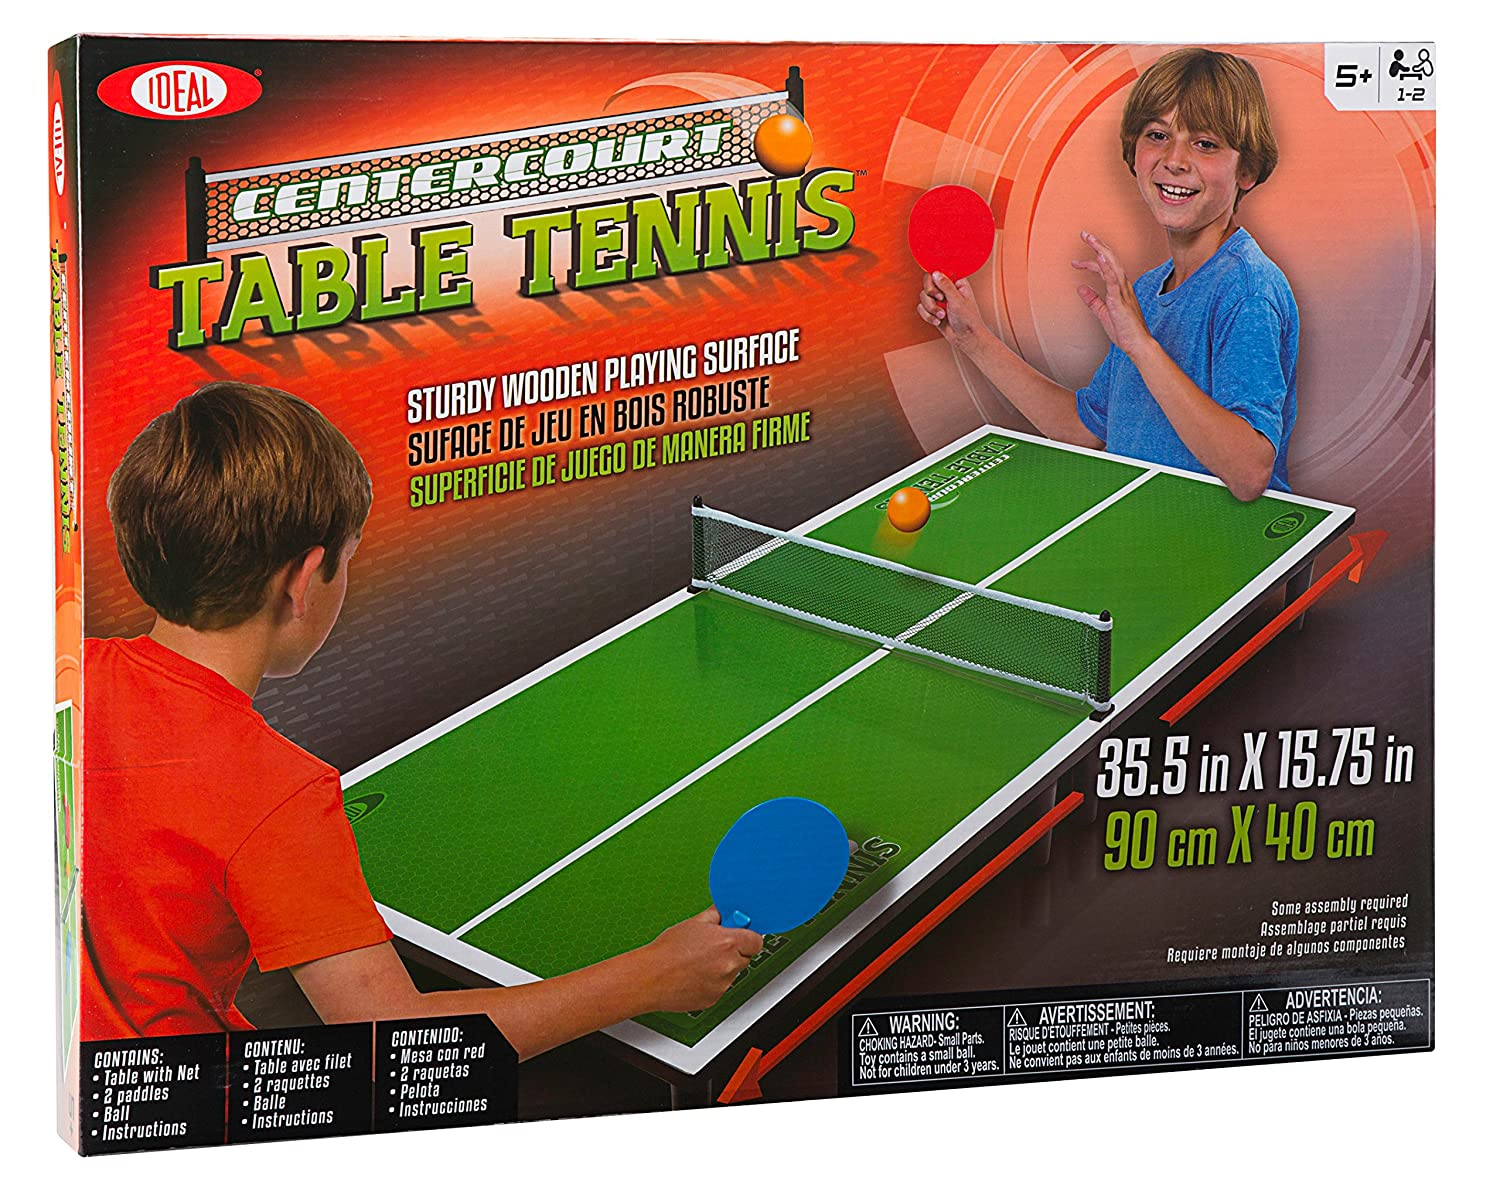 Ideal Centercourt Table Tennis B00RQLGXPW